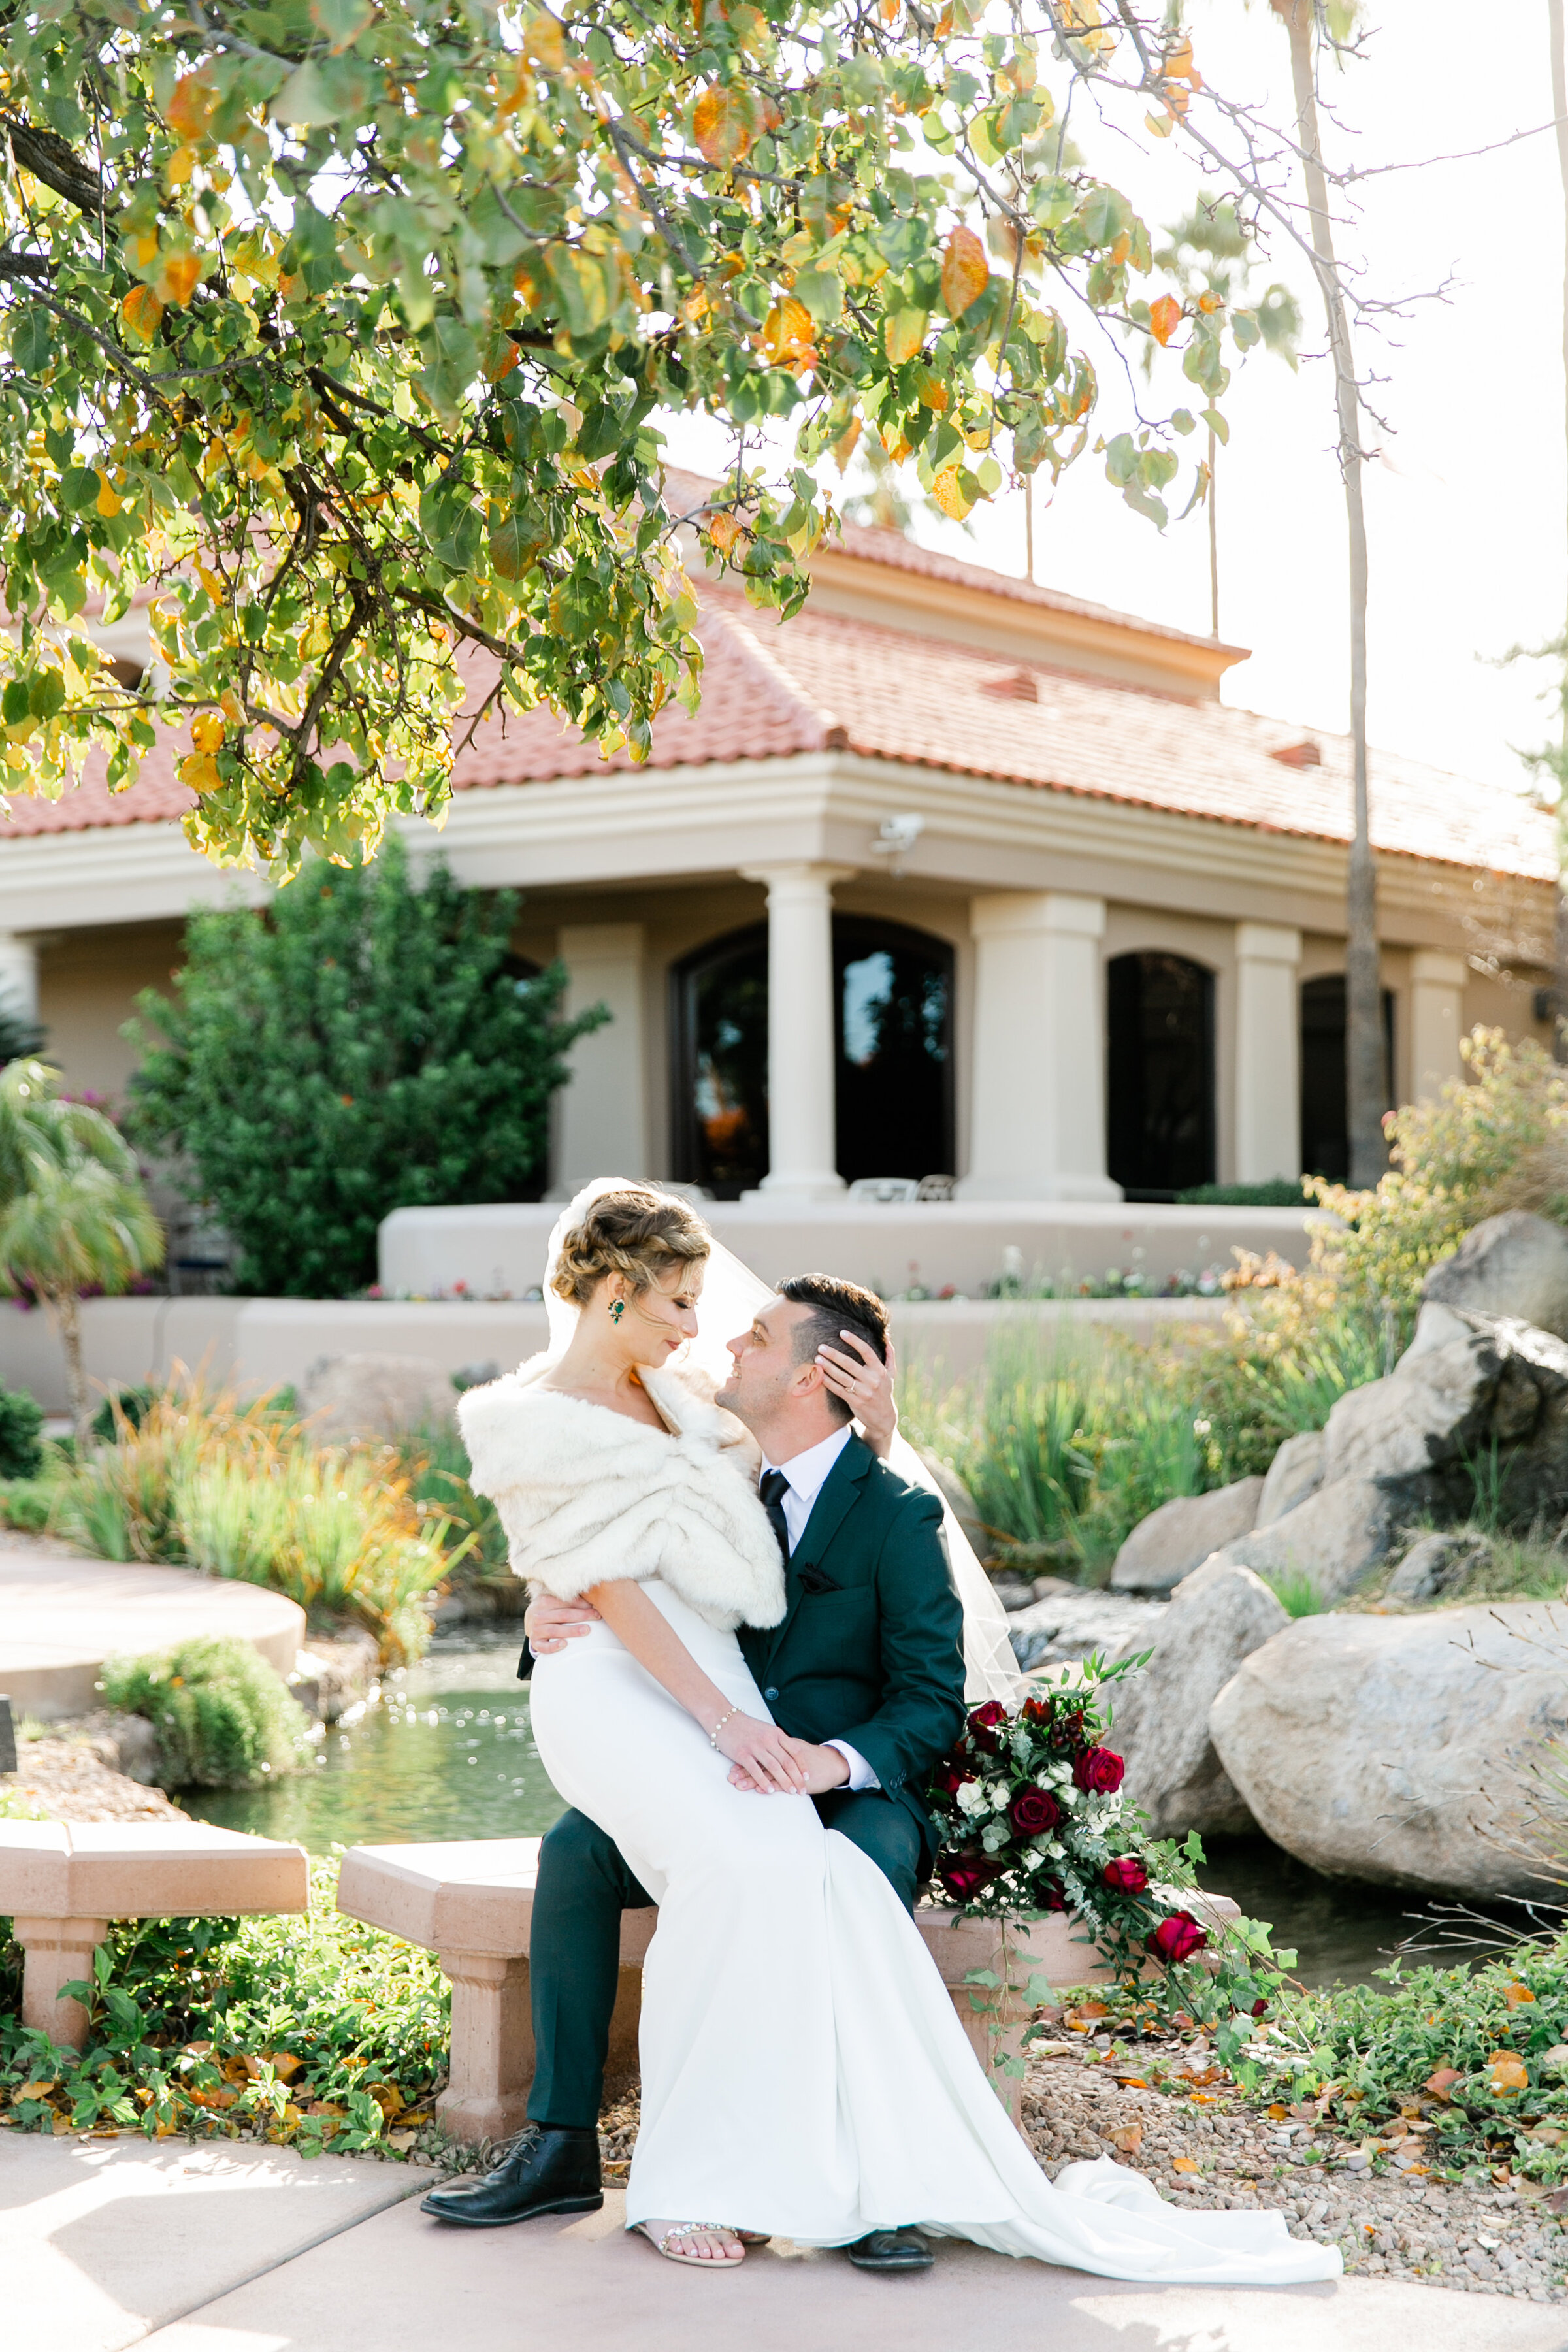 Karlie Colleen Photography - Gilbert Arizona Wedding - Val Vista Lakes - Brynne & Josh-455